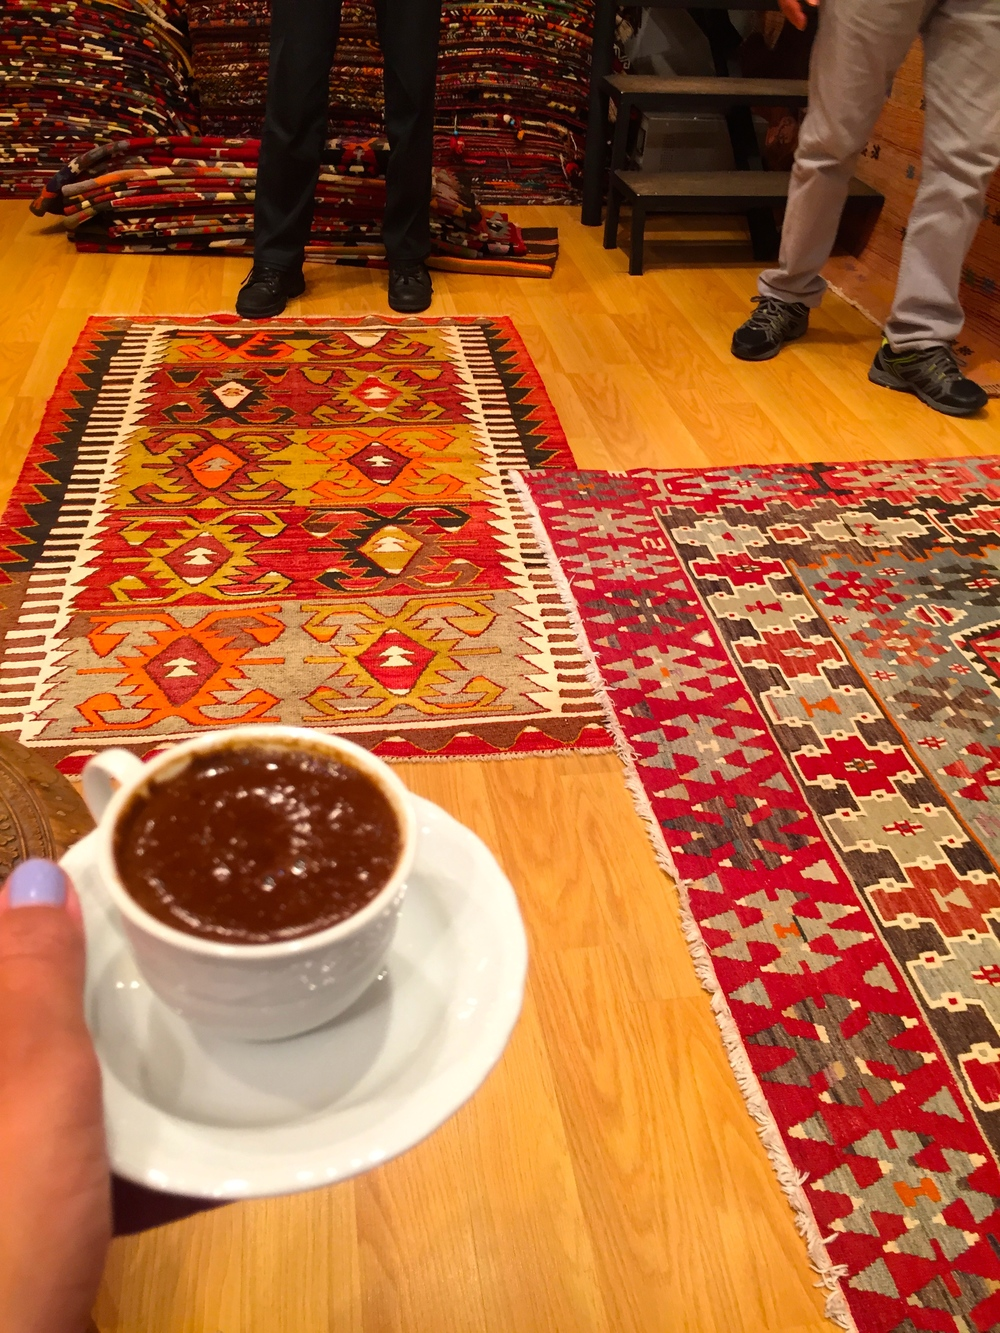 While discussing various kilim rugs, we sipped Turkish coffee then, when we got to the grounds we flipped the cup over and the shopkeeper read our fortunes from the groups.  They were... interesting.  Here's hoping they come true.